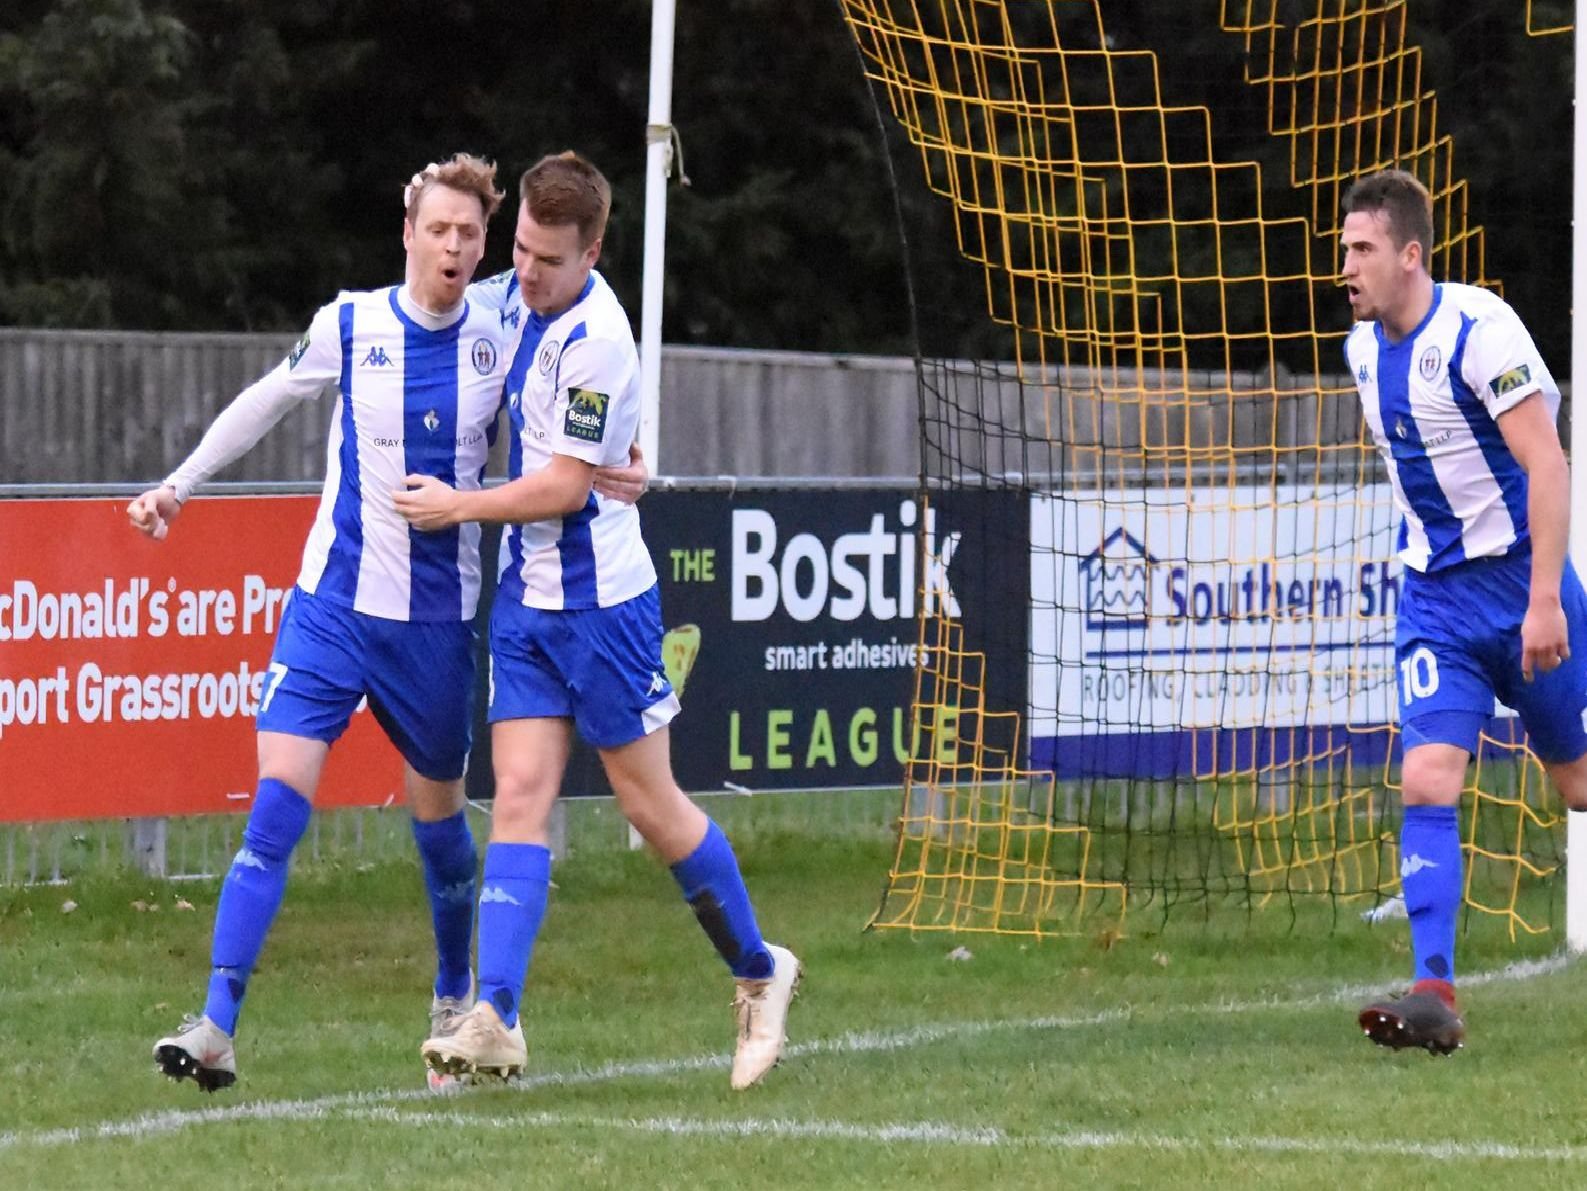 Callum Saunders celebrates his goal. Picture by Grahame Lehkyj